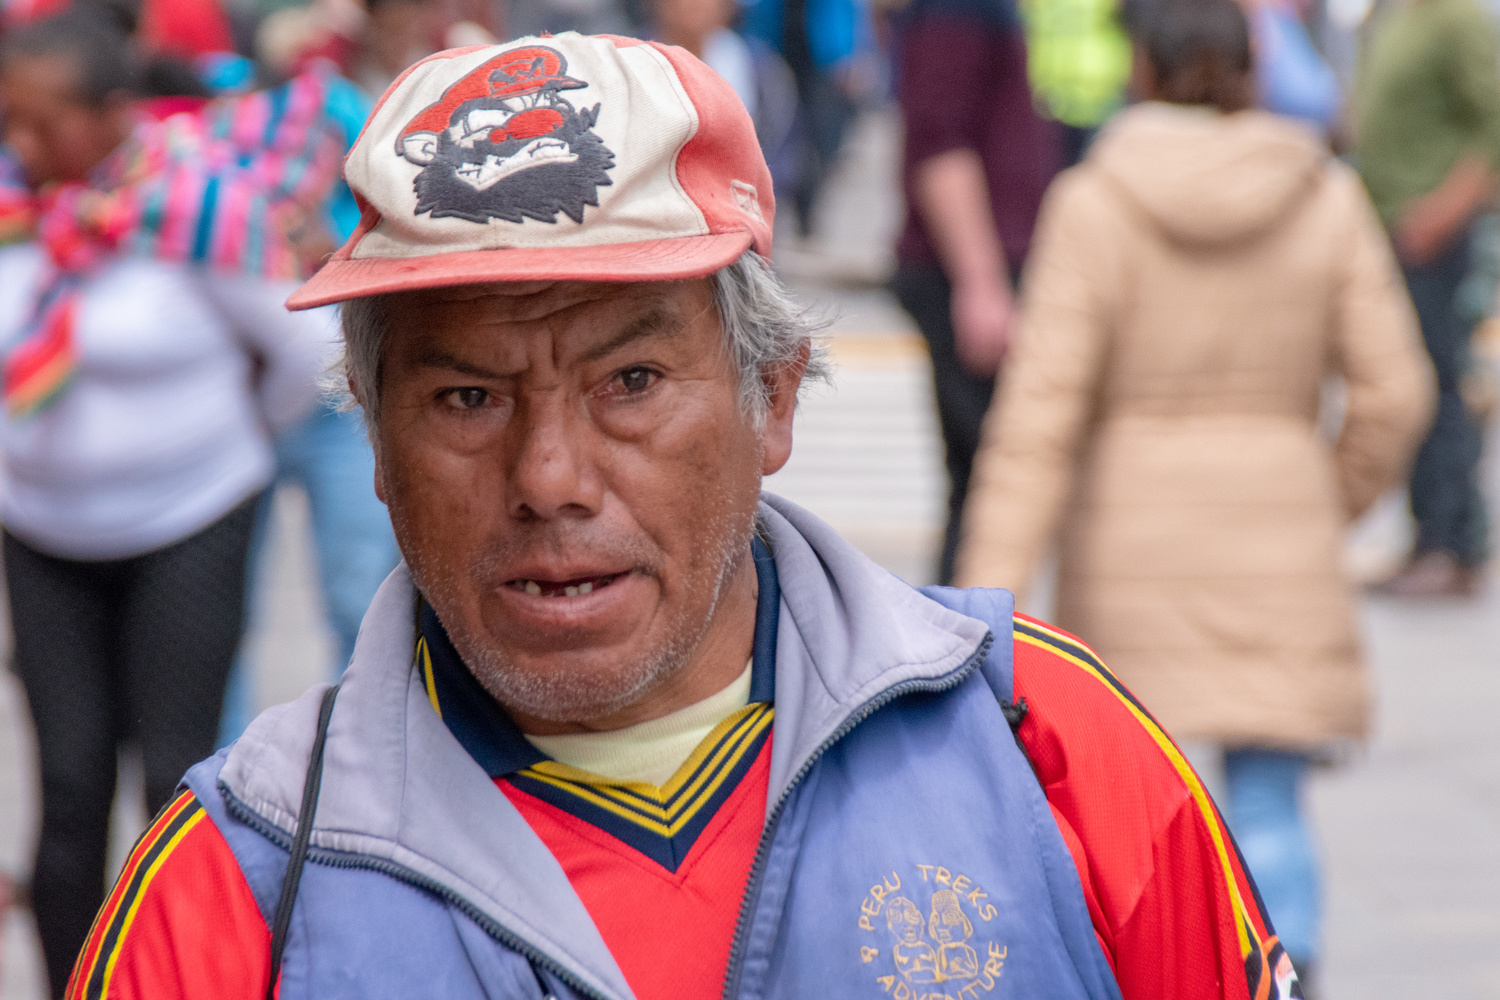 Old Guy in Cuzco Peru by carey rogers